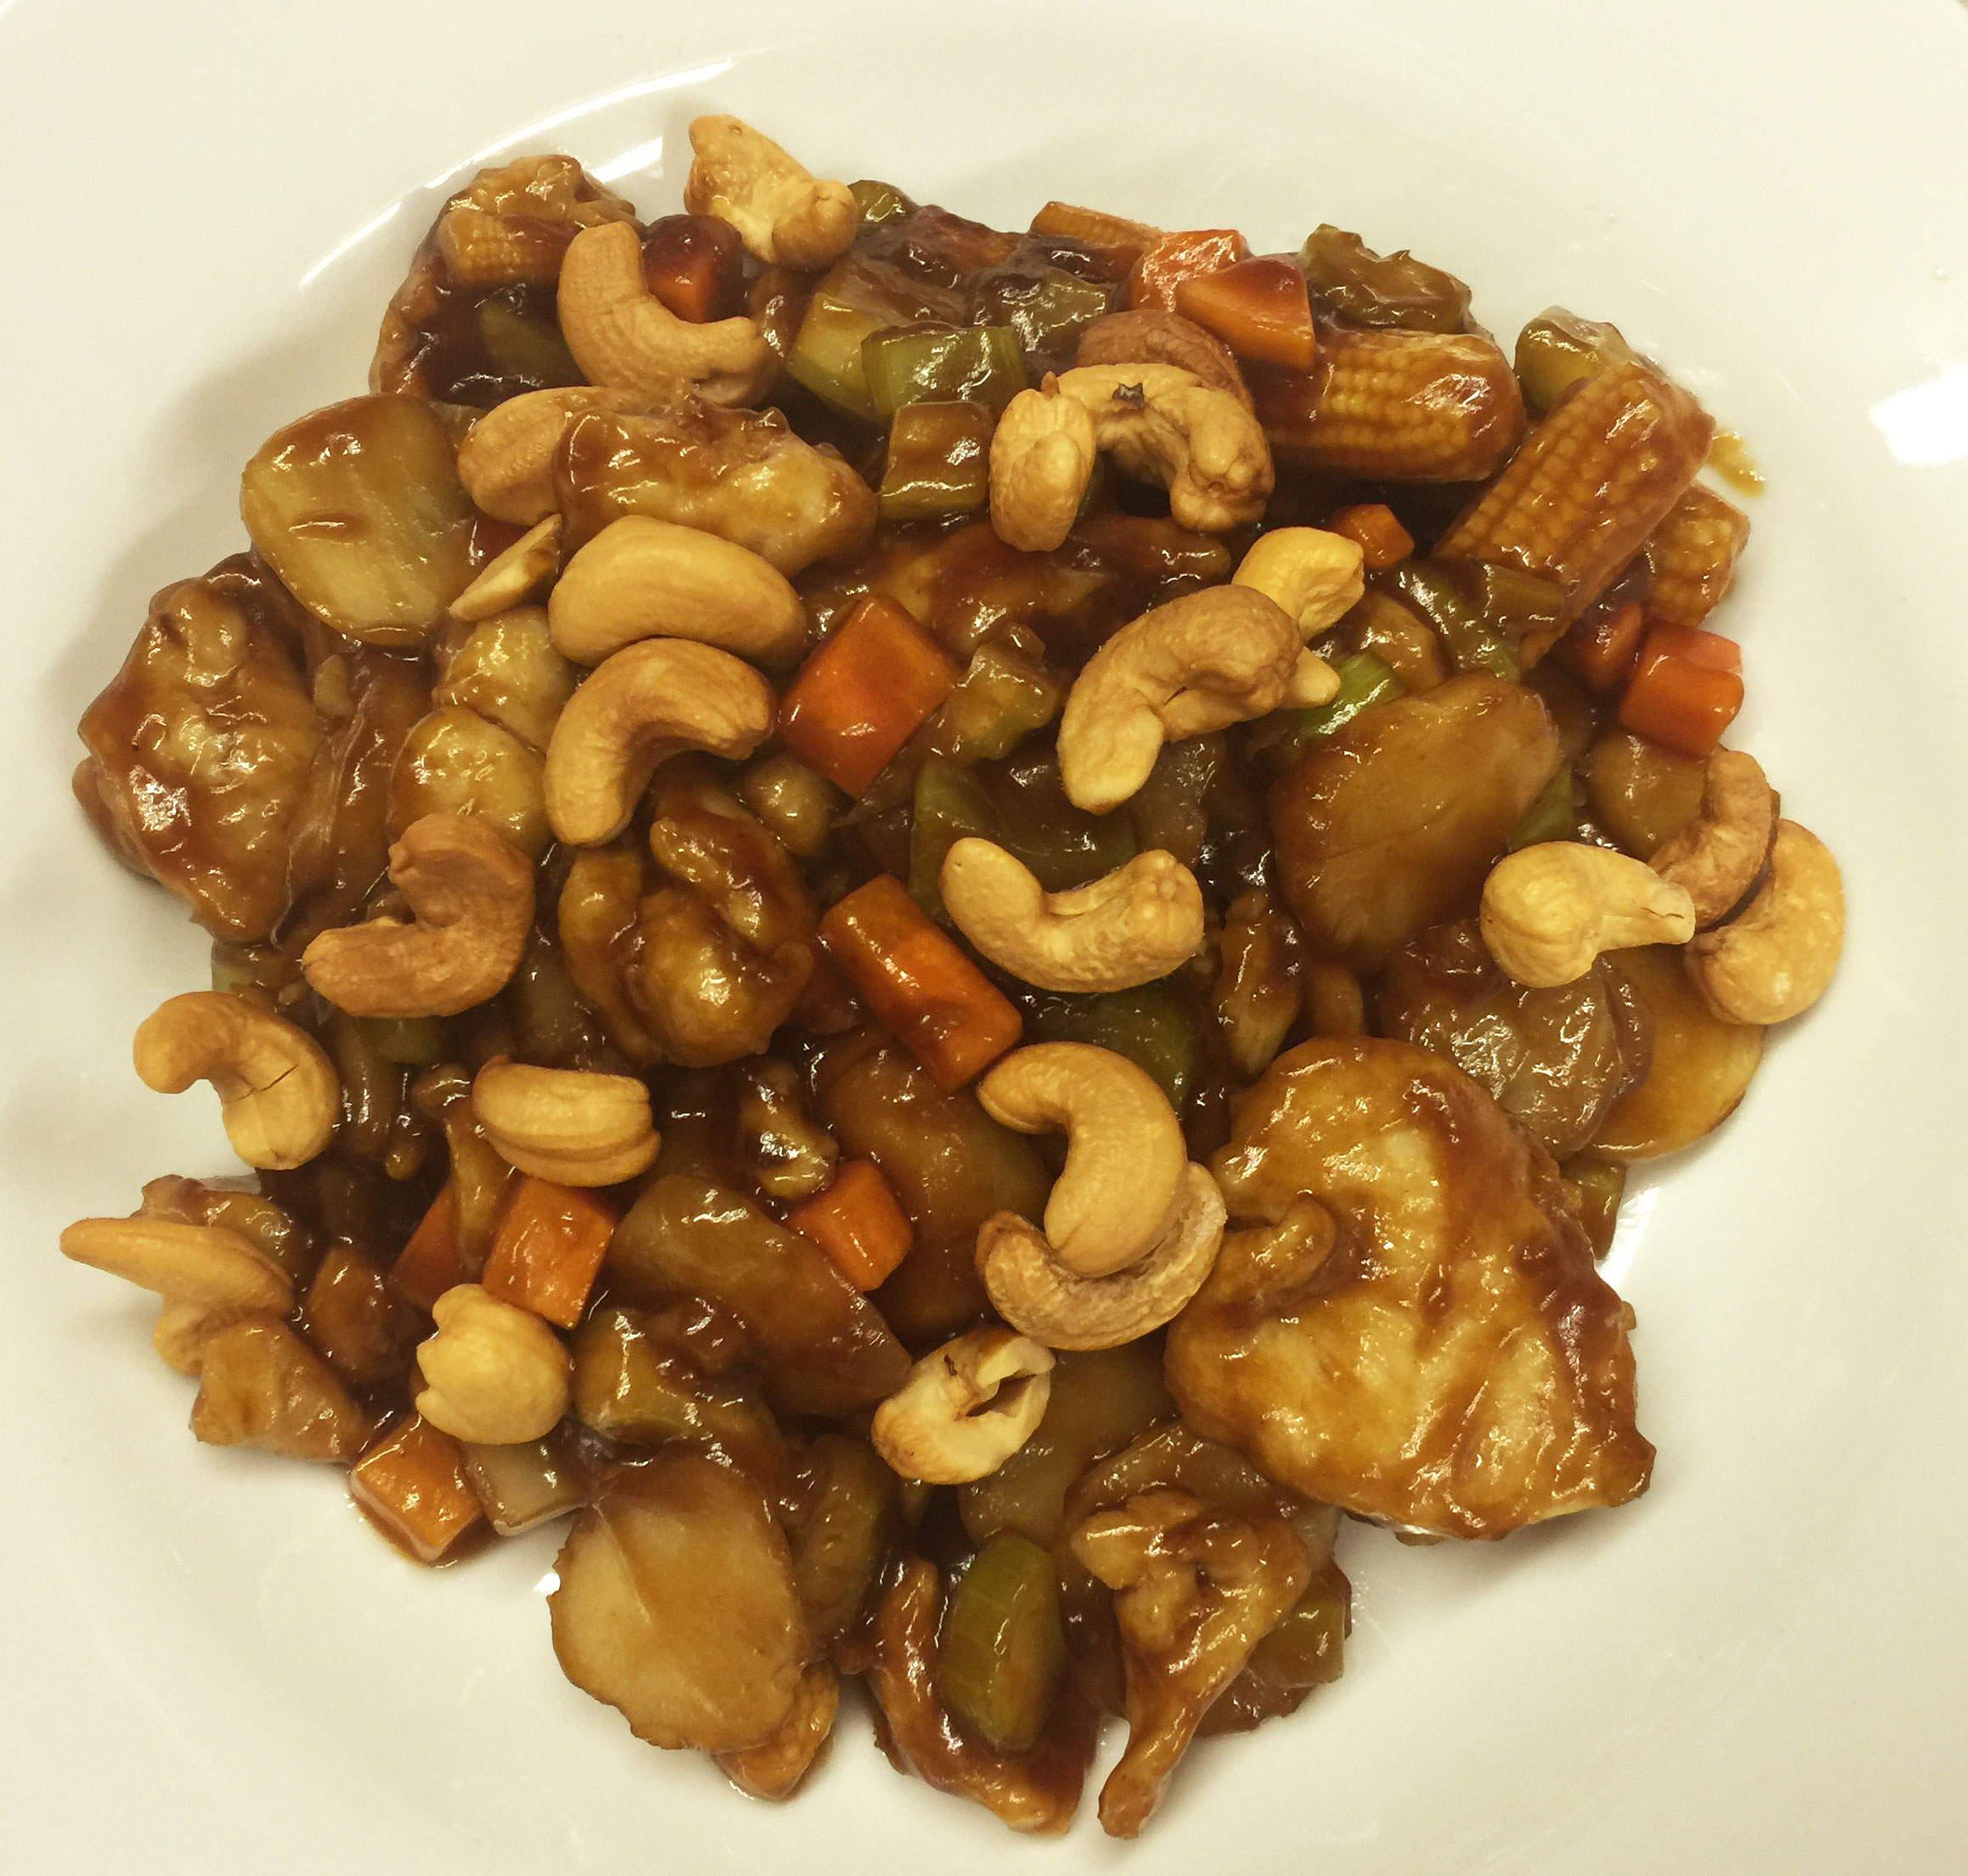 82. Chicken with Cashew Nuts